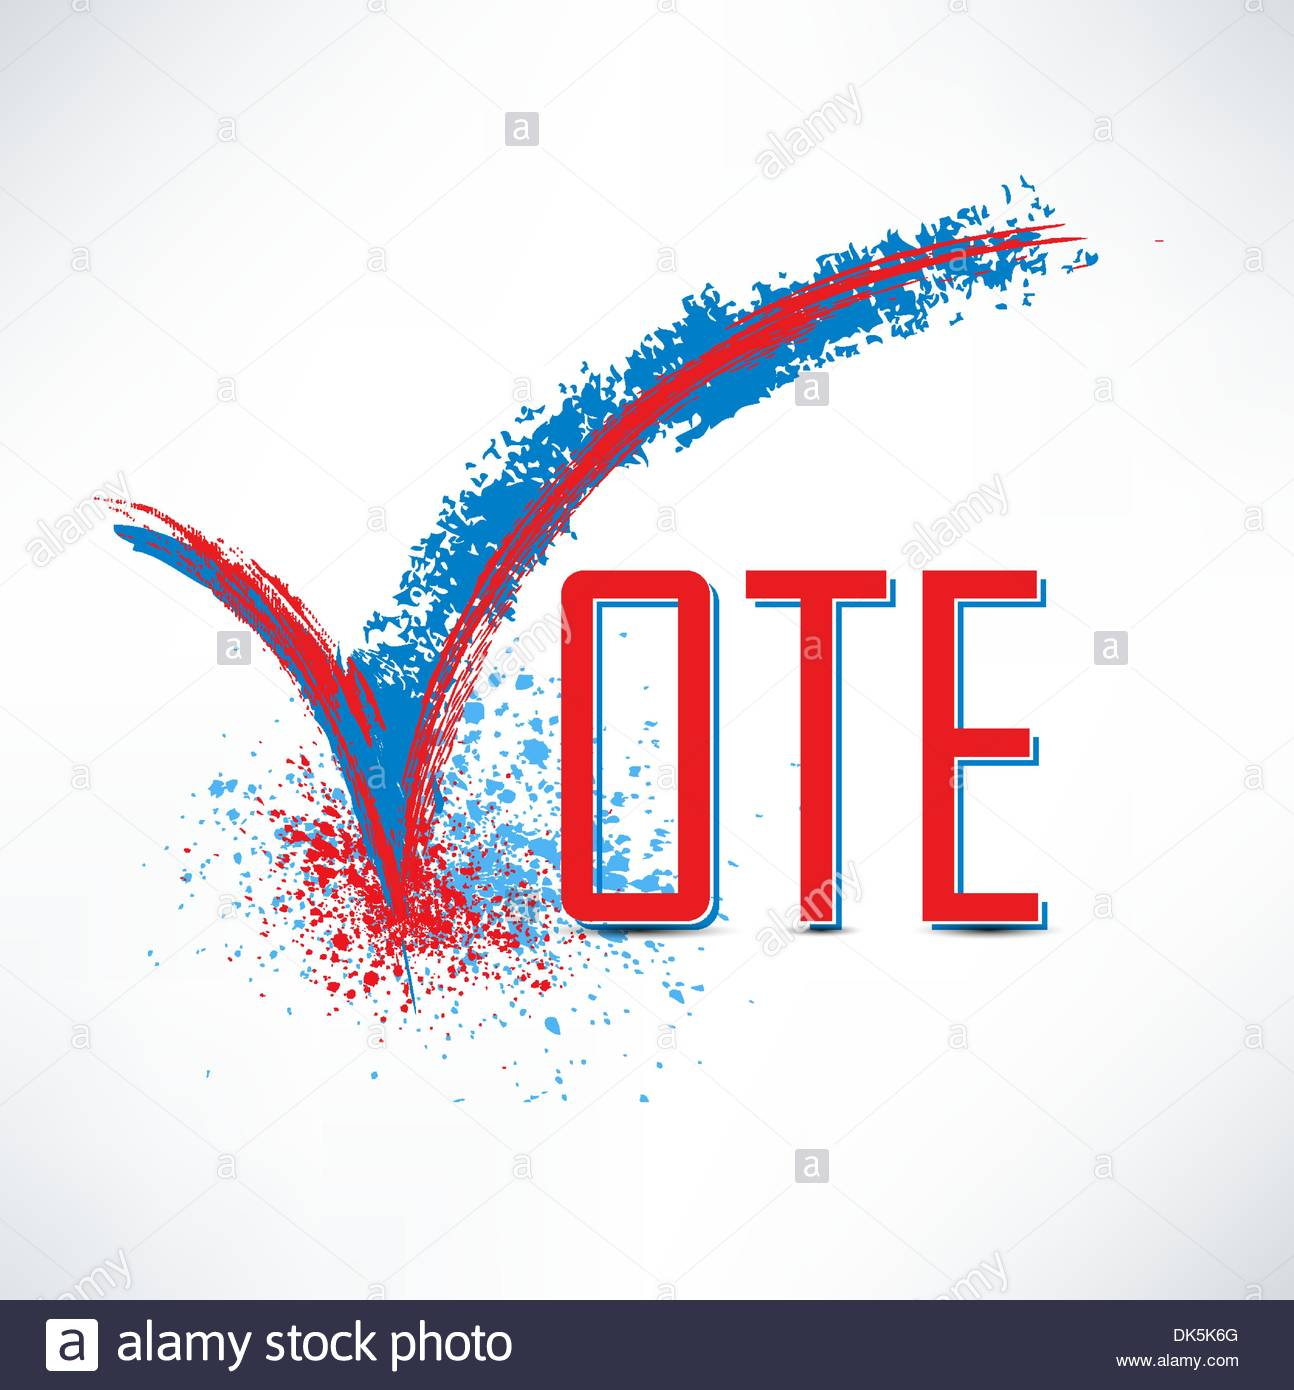 1294x1390 Vote Text With Check Mark And Check Box Stock Vector Art